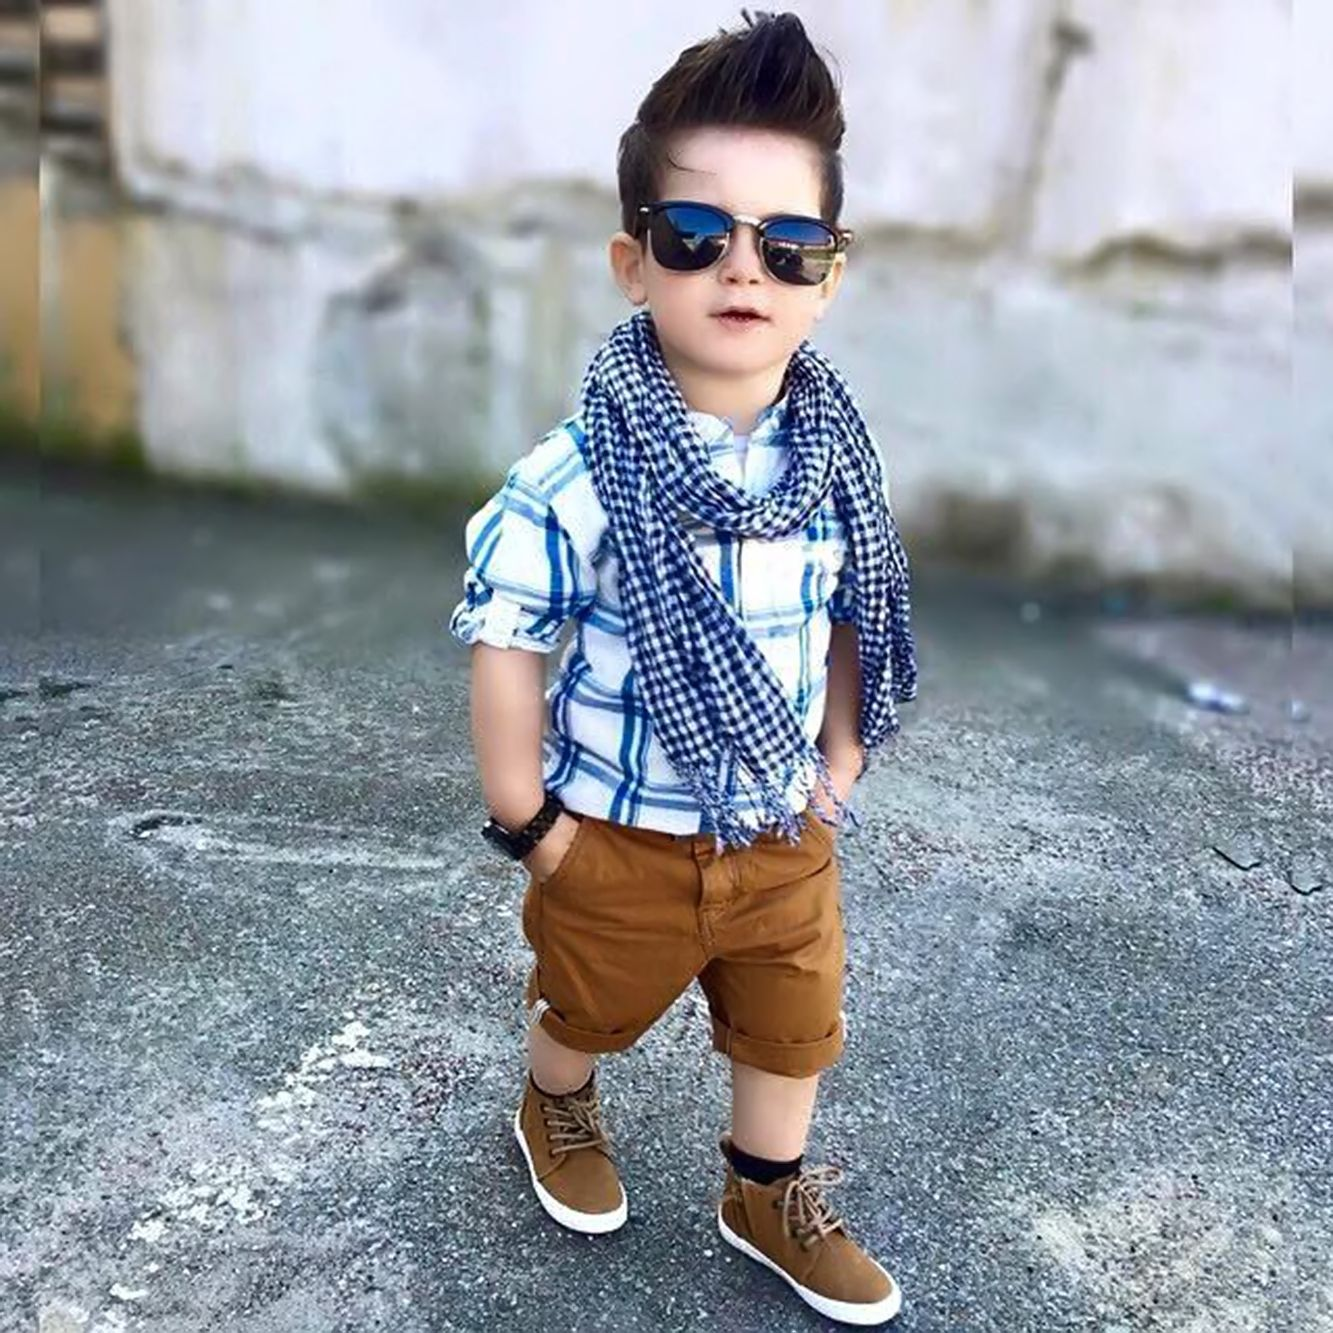 Pin by Saurabh Singh on Smart Boys | Pinterest | Baby jeans, Kids ...